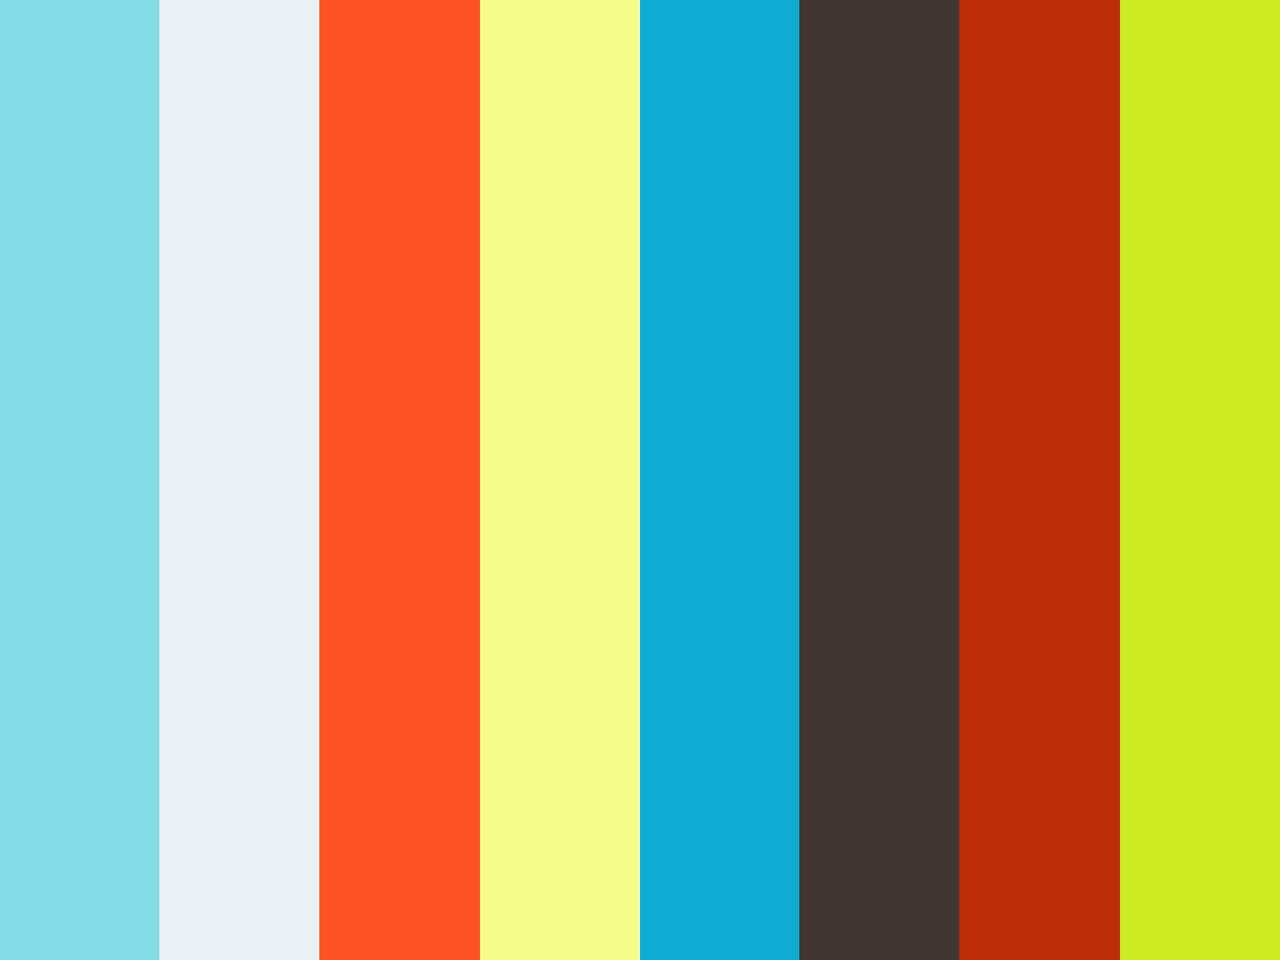 The Effect of Intraperitoneal Local Anesthetic on Functional Postoperative Recovery Following Laparoscopic Colectomy 2017